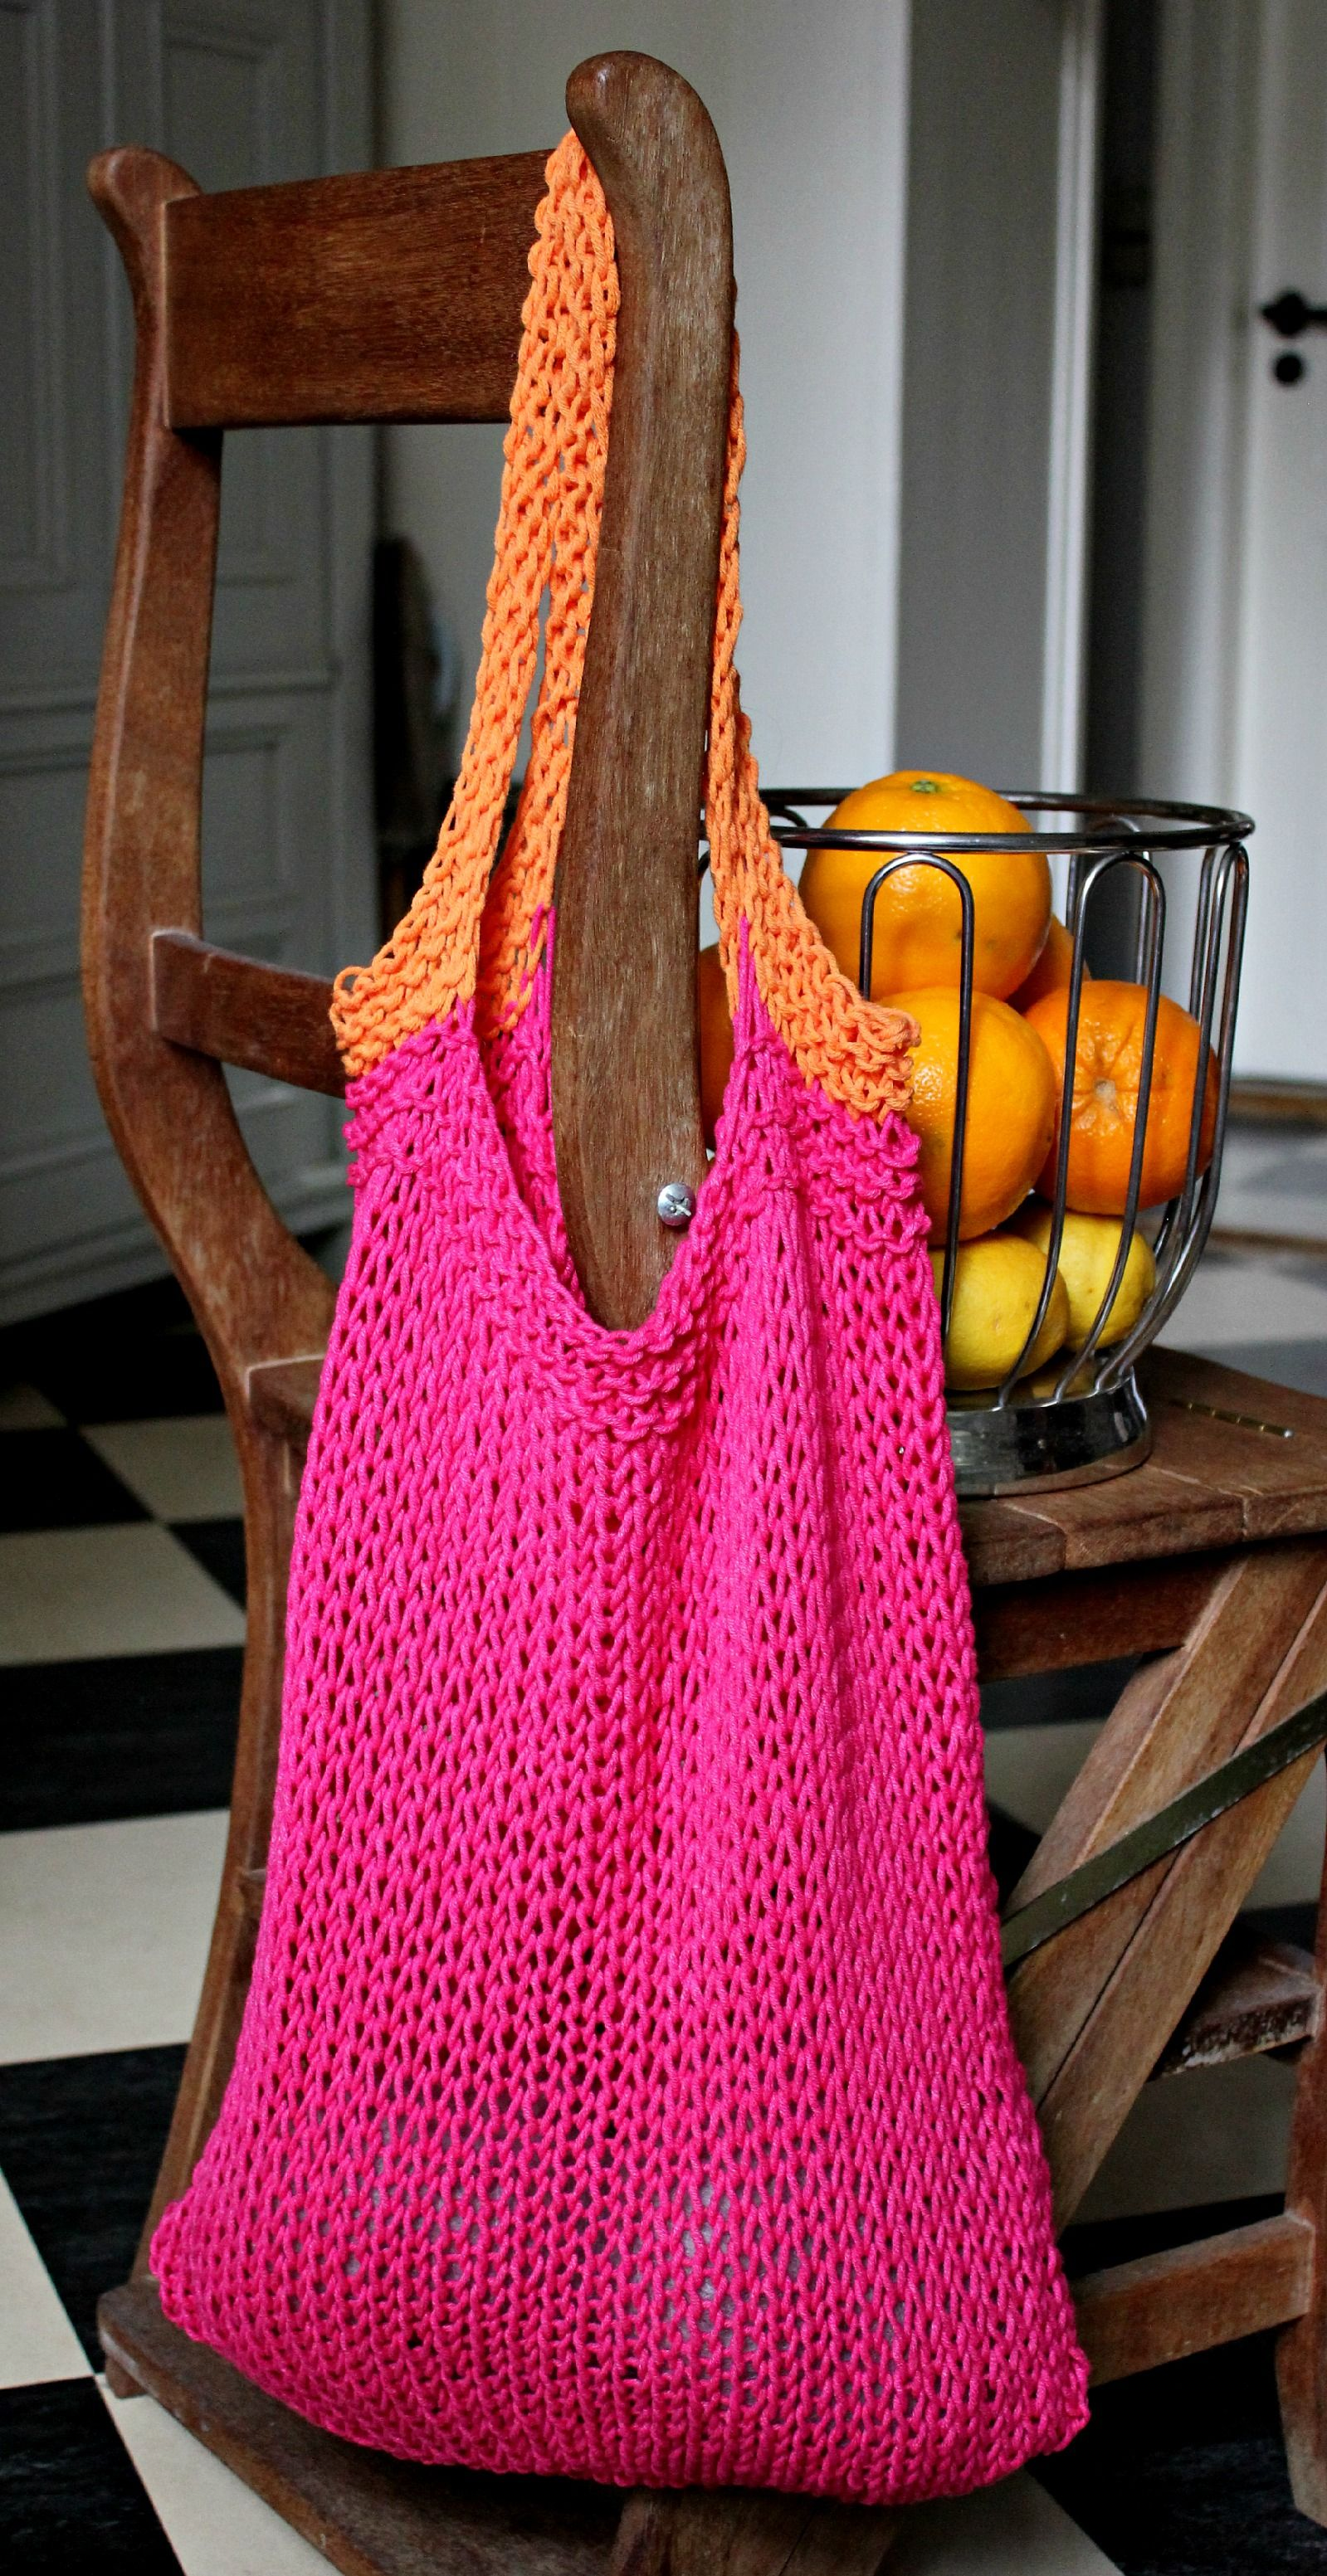 Knit A Simple Bag from Susanne-gustafsson.dk | Knit ideas ...